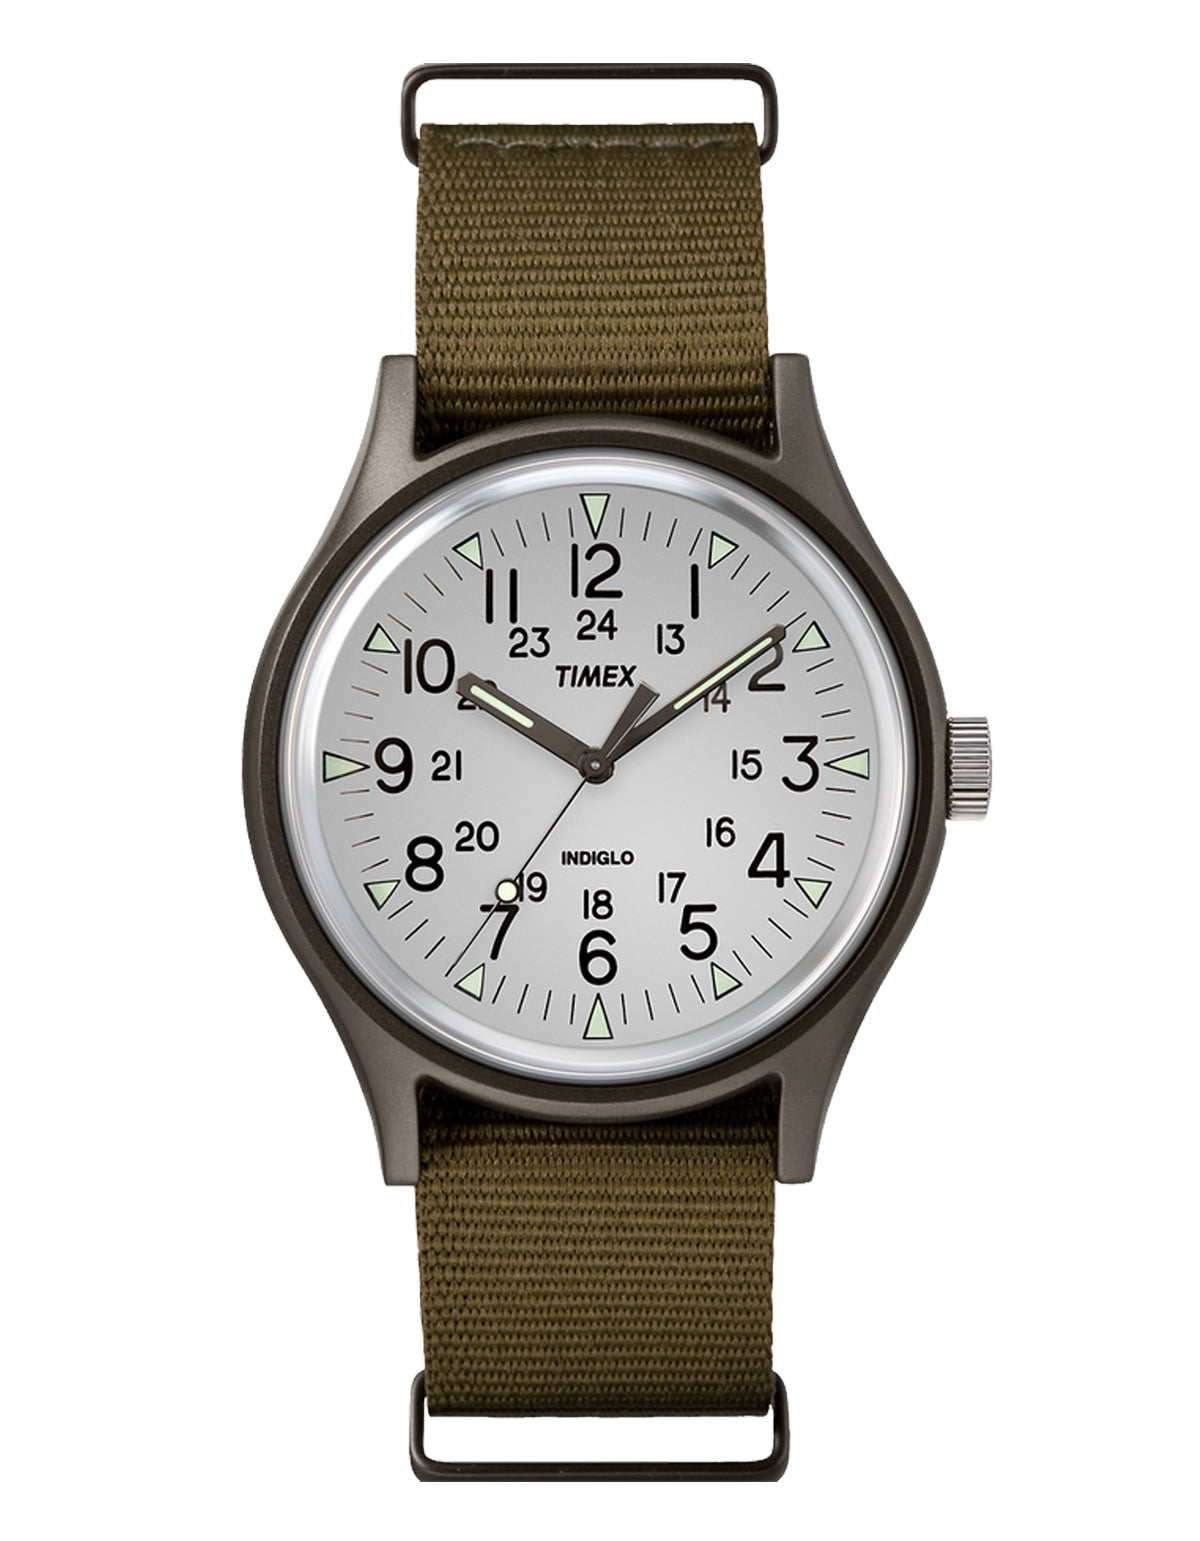 Timex Allied MK1 Aluminum Watch White Brown Olive